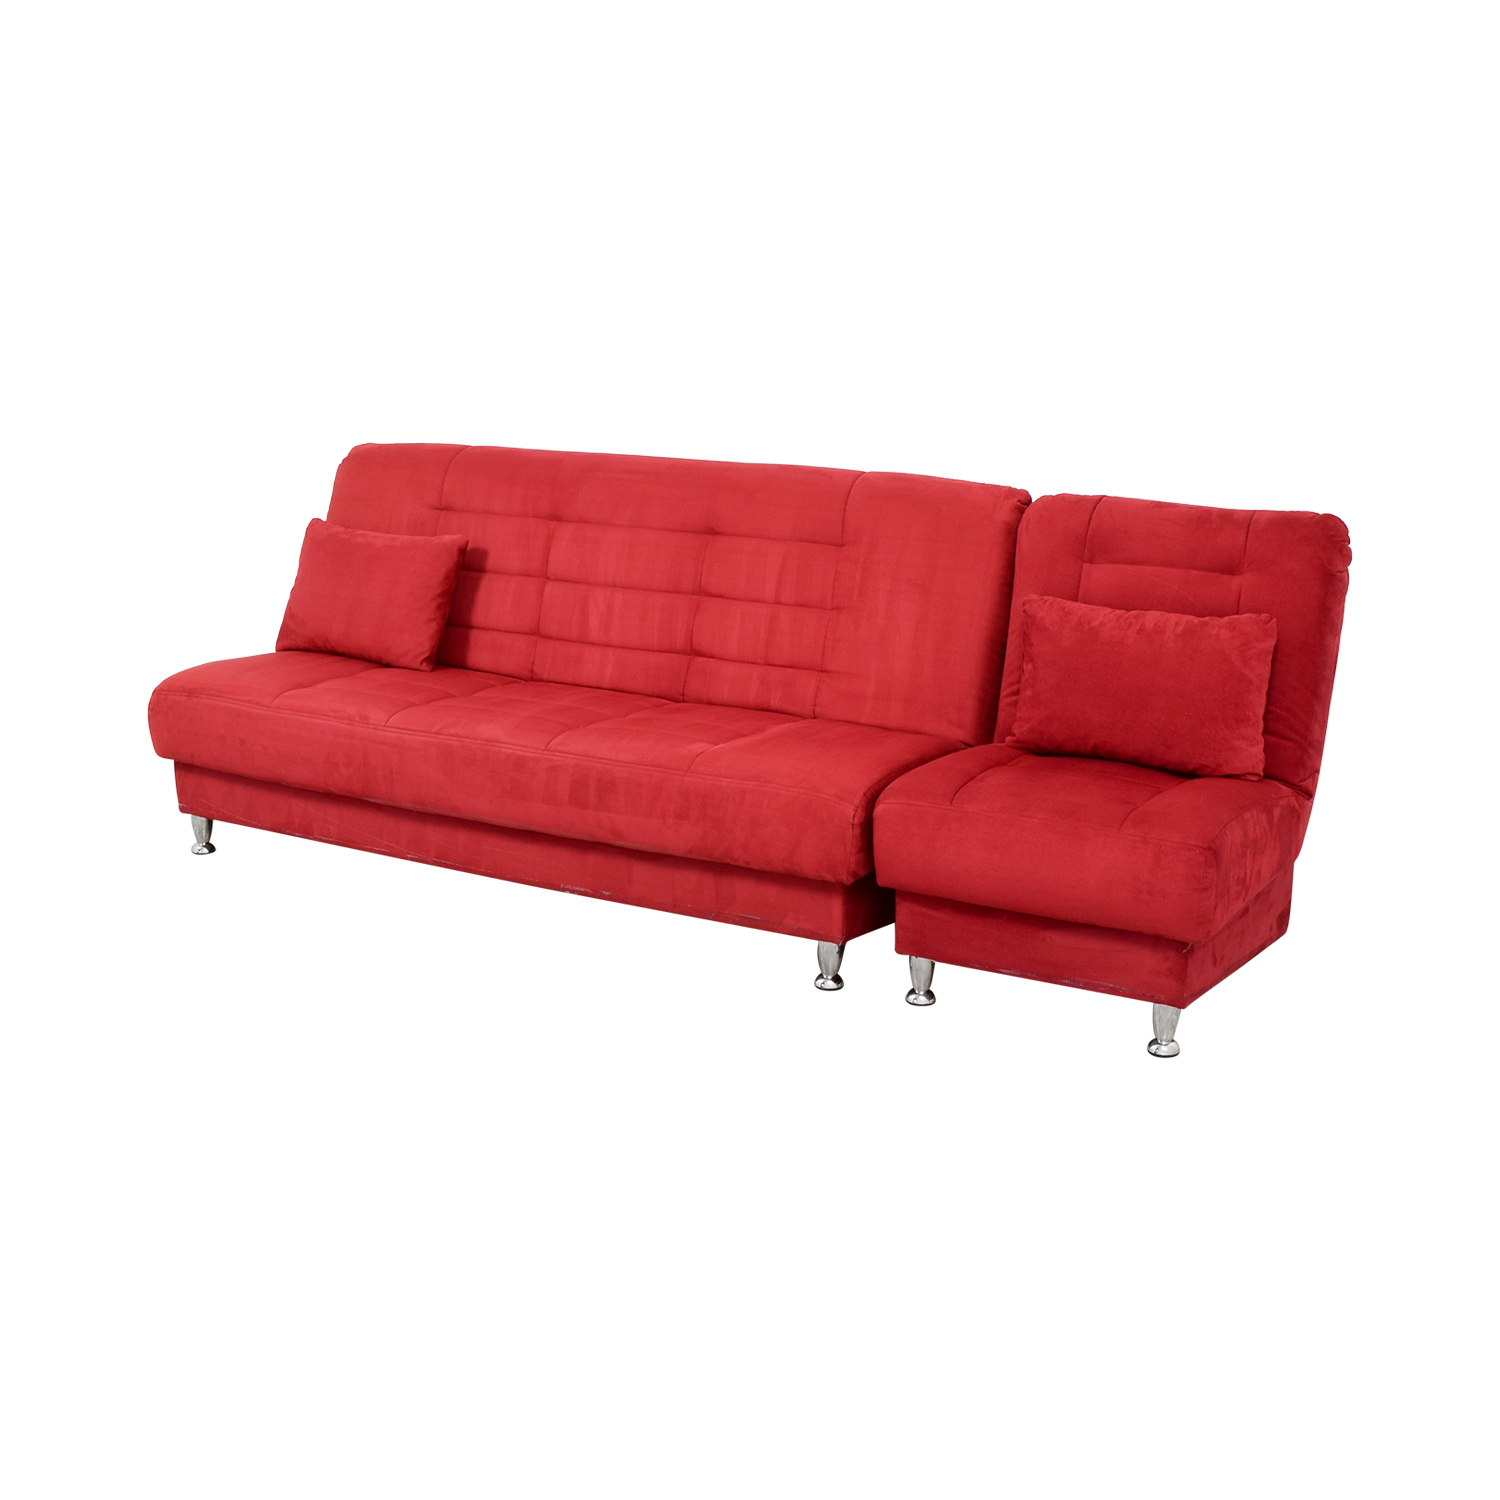 Sofa bed red vegas sofa bed with storage thesofa for Sofa bed red